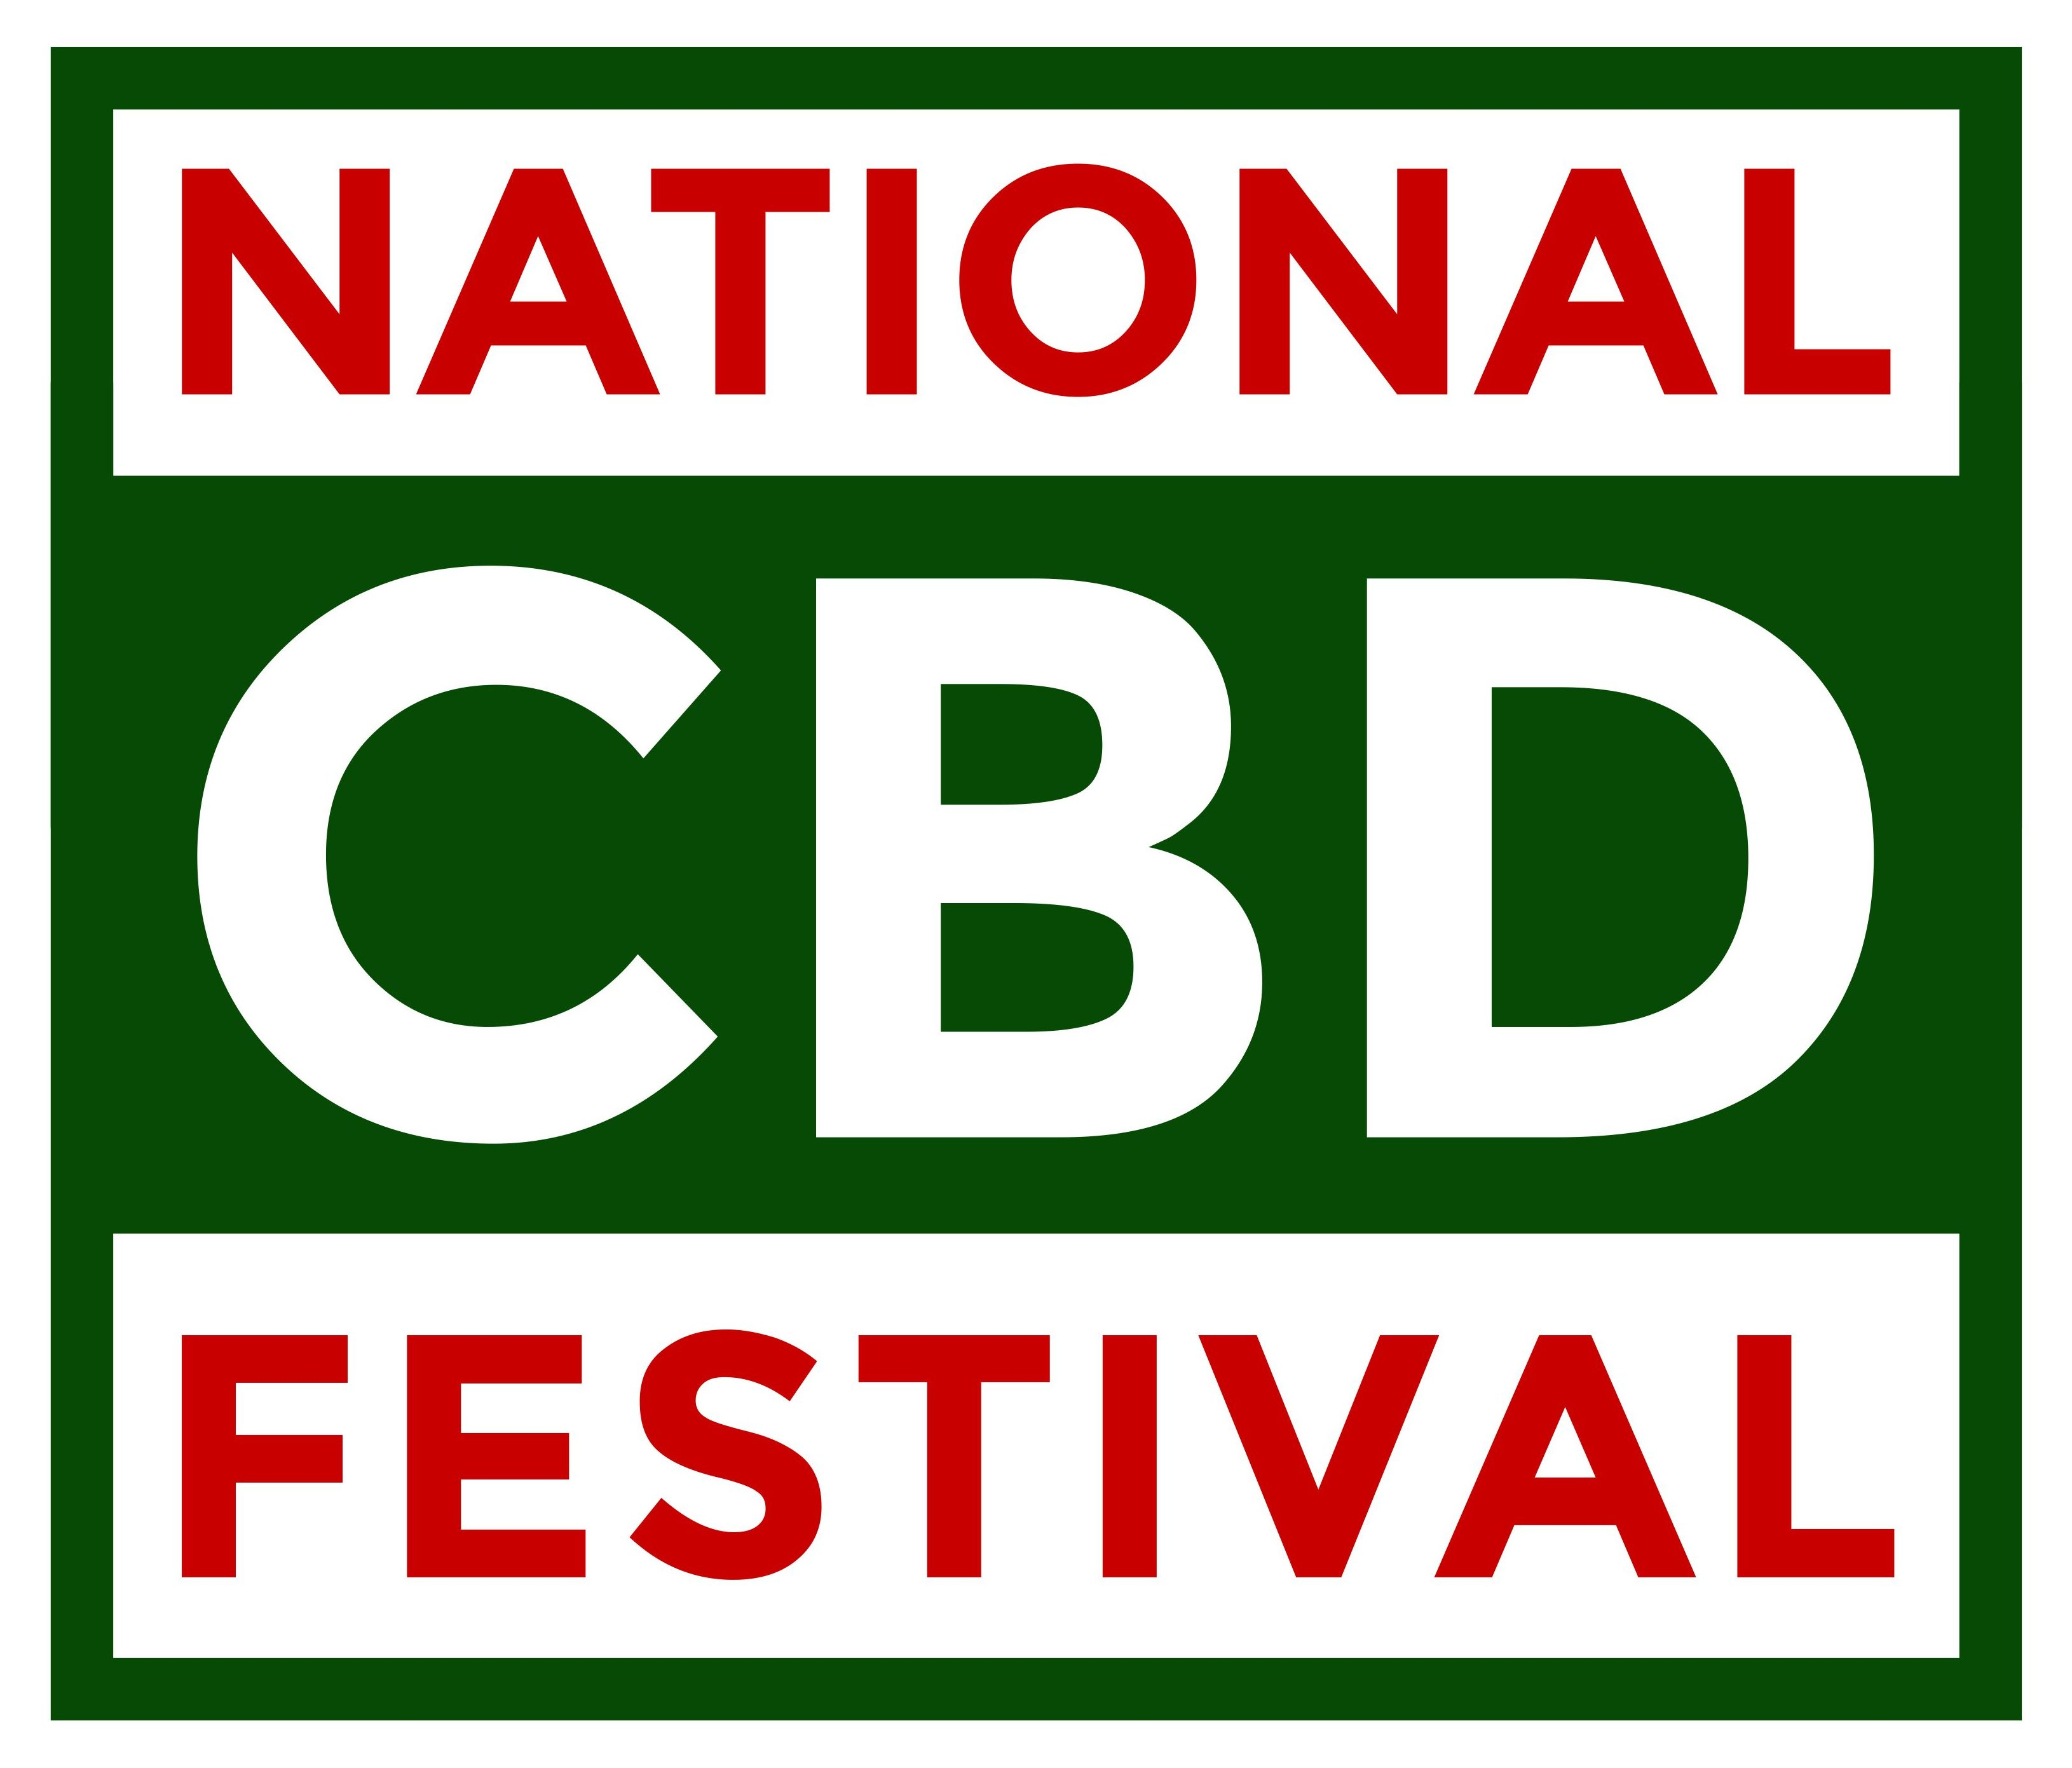 National CBD Festival